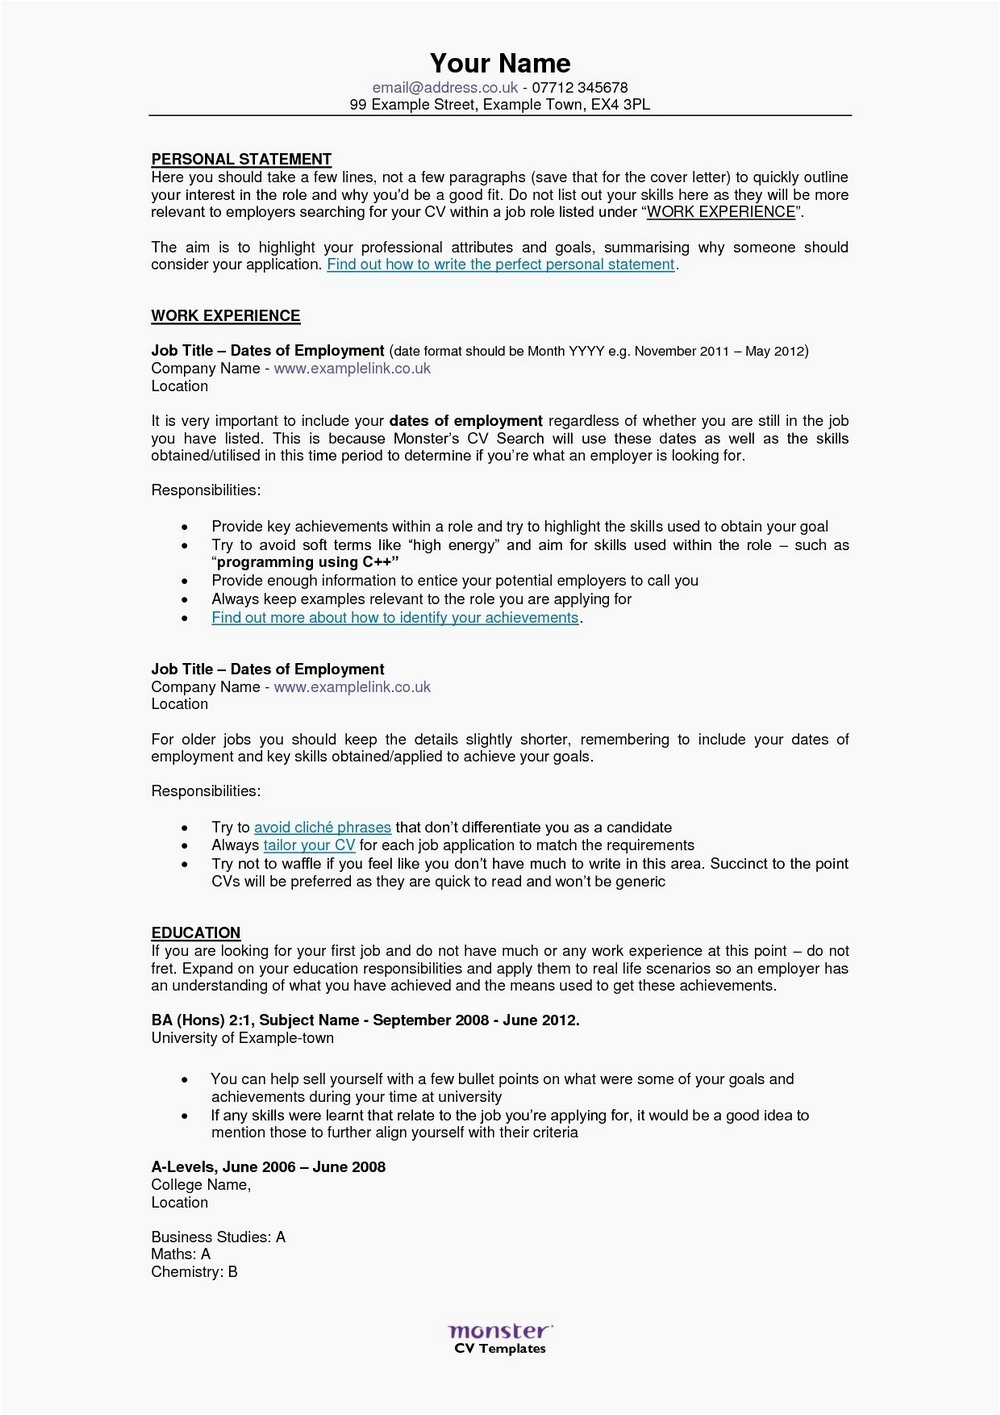 Best Resume Search Engine For Employers